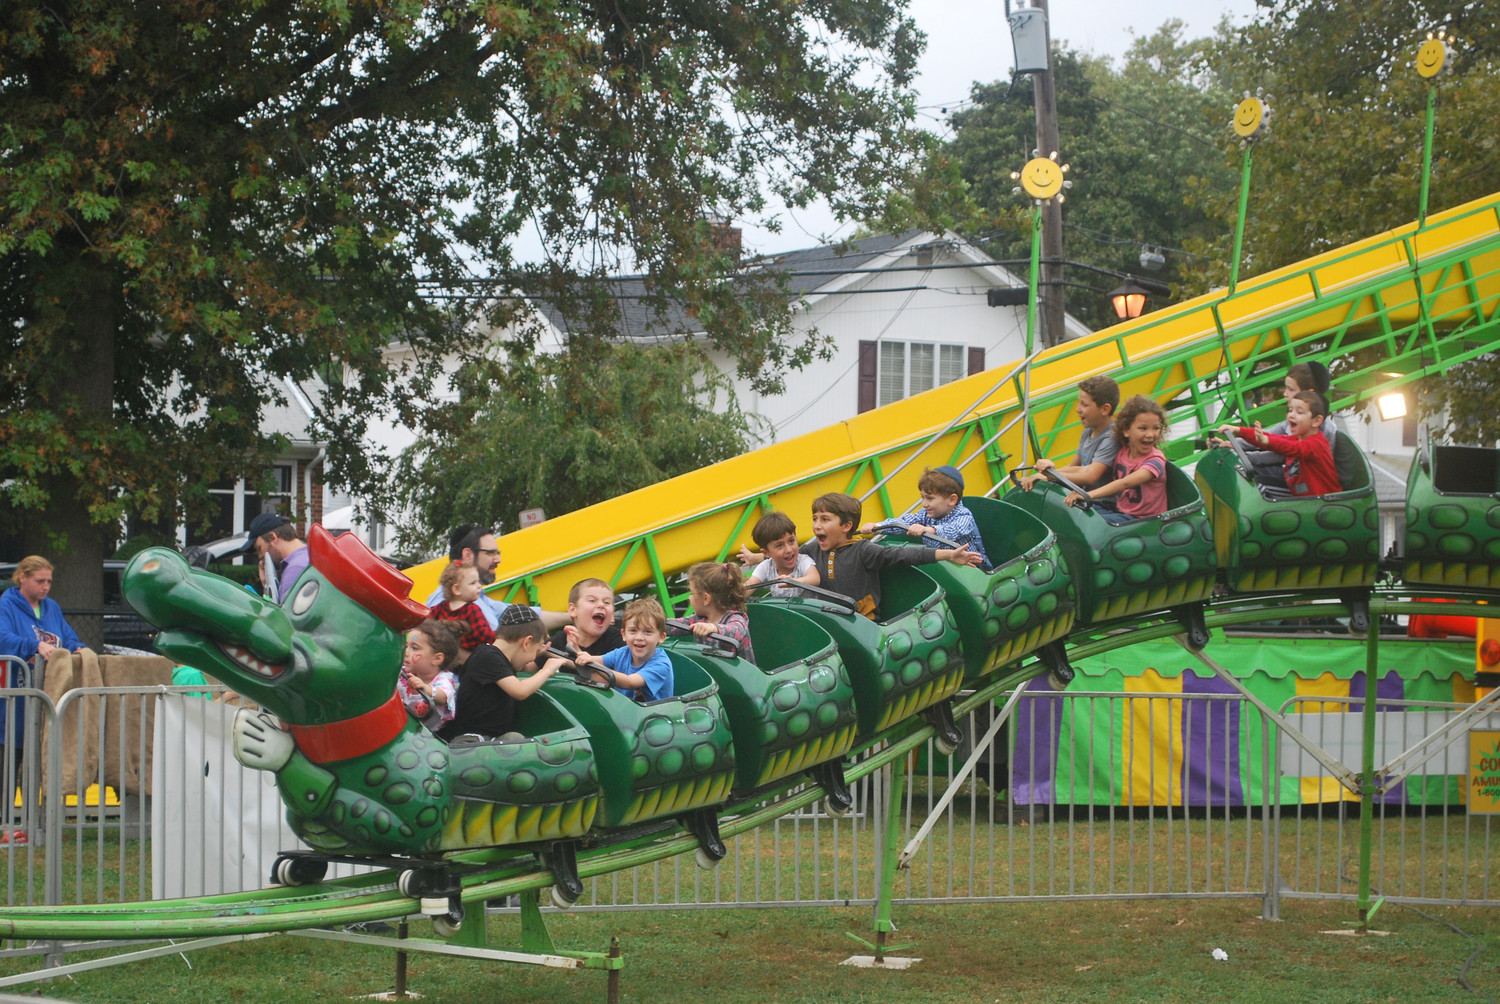 The Go-Gator ride at the Community Chest South Shore fair at Andrew J. Parise Cedarhurst Park provided thrills for several children last Sunday.